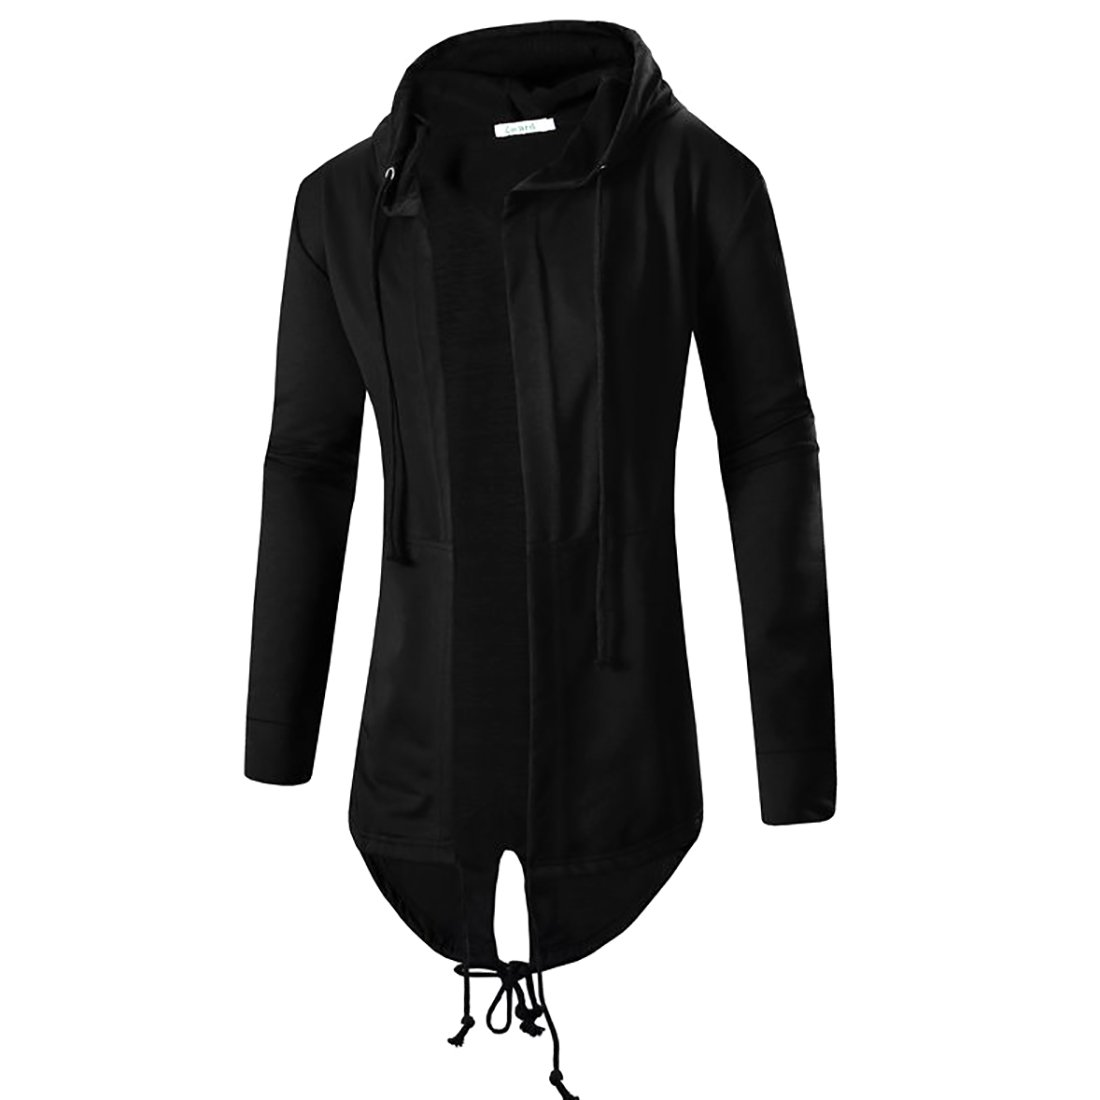 Comeon Men's Black Hooded Cardigan Cool Long Length Large Open Lightweight Cape Cloak Coat Drape Cardigans Hoodie (Black,US XL/Asian 2XL) by Comeon (Image #1)